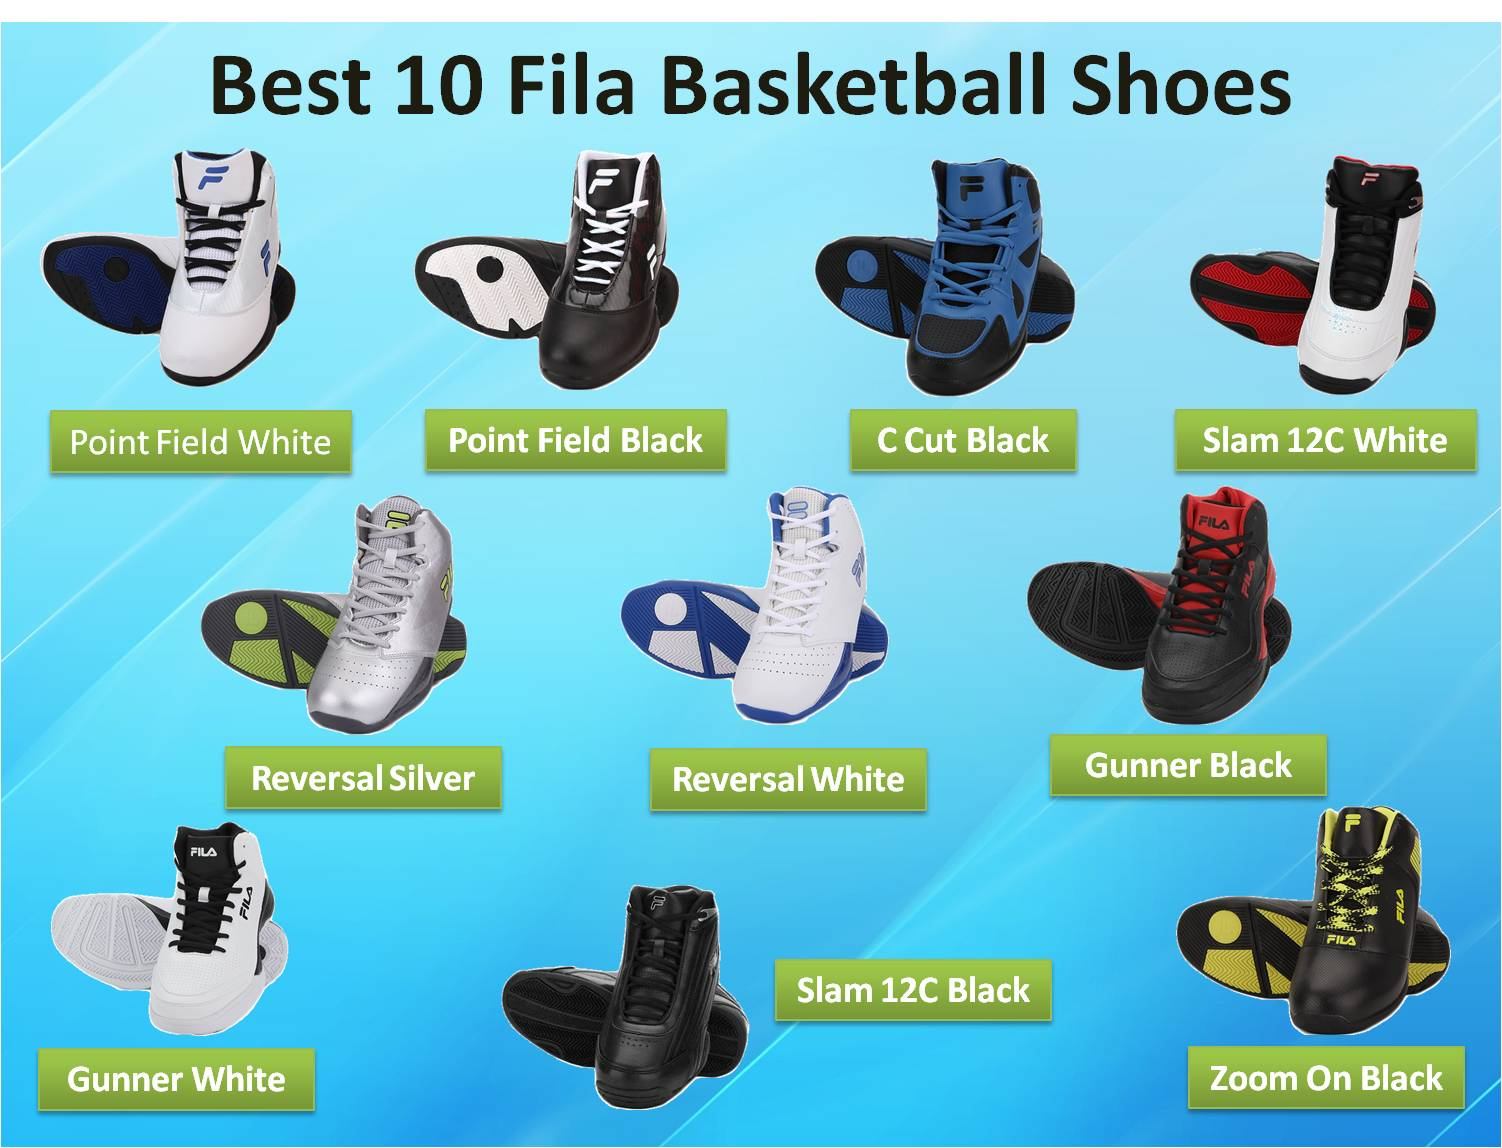 Best 10 Fila Basketball Shoes